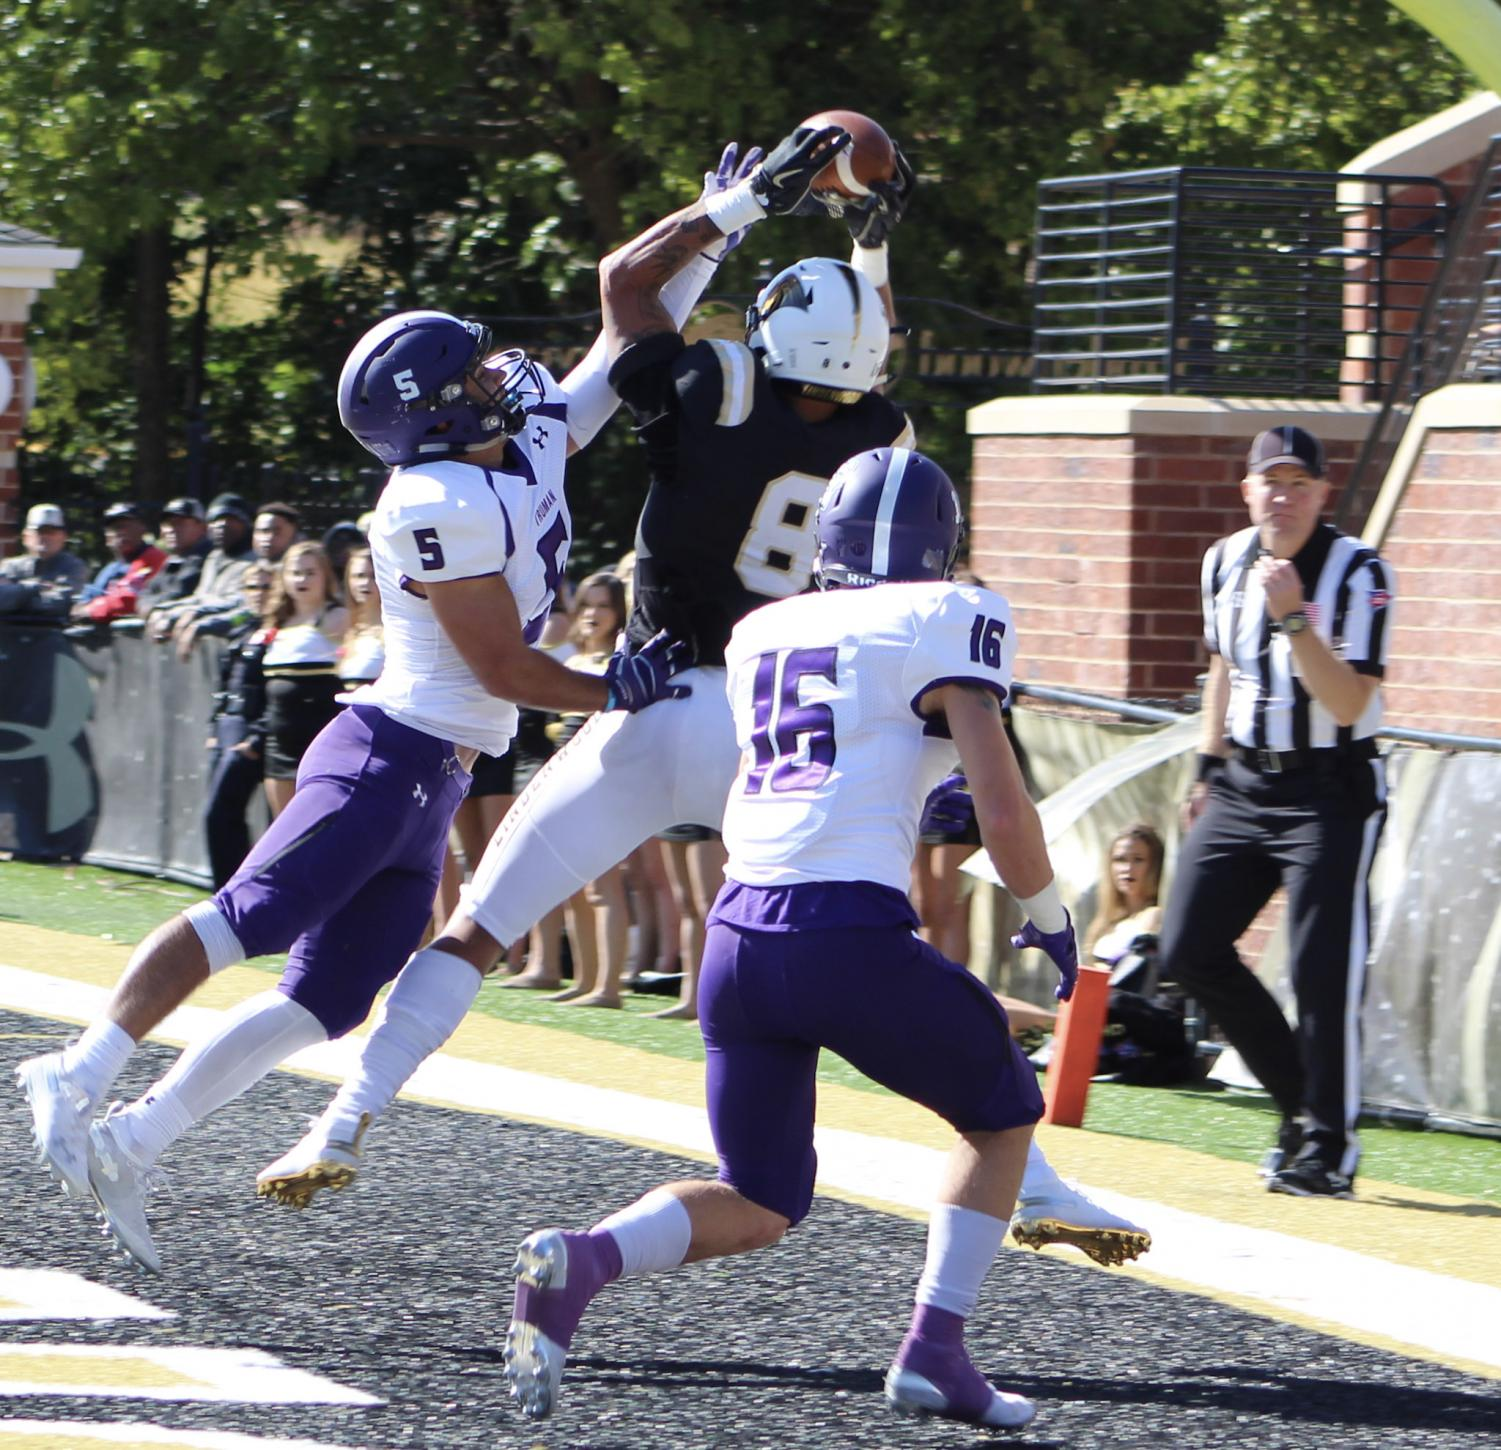 No. 5 Zach Nadle and no. 16 Ben Watson try to steal the ball from senior Erik Henneman who successfully completed the touchdown against Truman State during Homecoming Day at Harlen C. Hunter Stadium  Photo by Caleb Riordan.